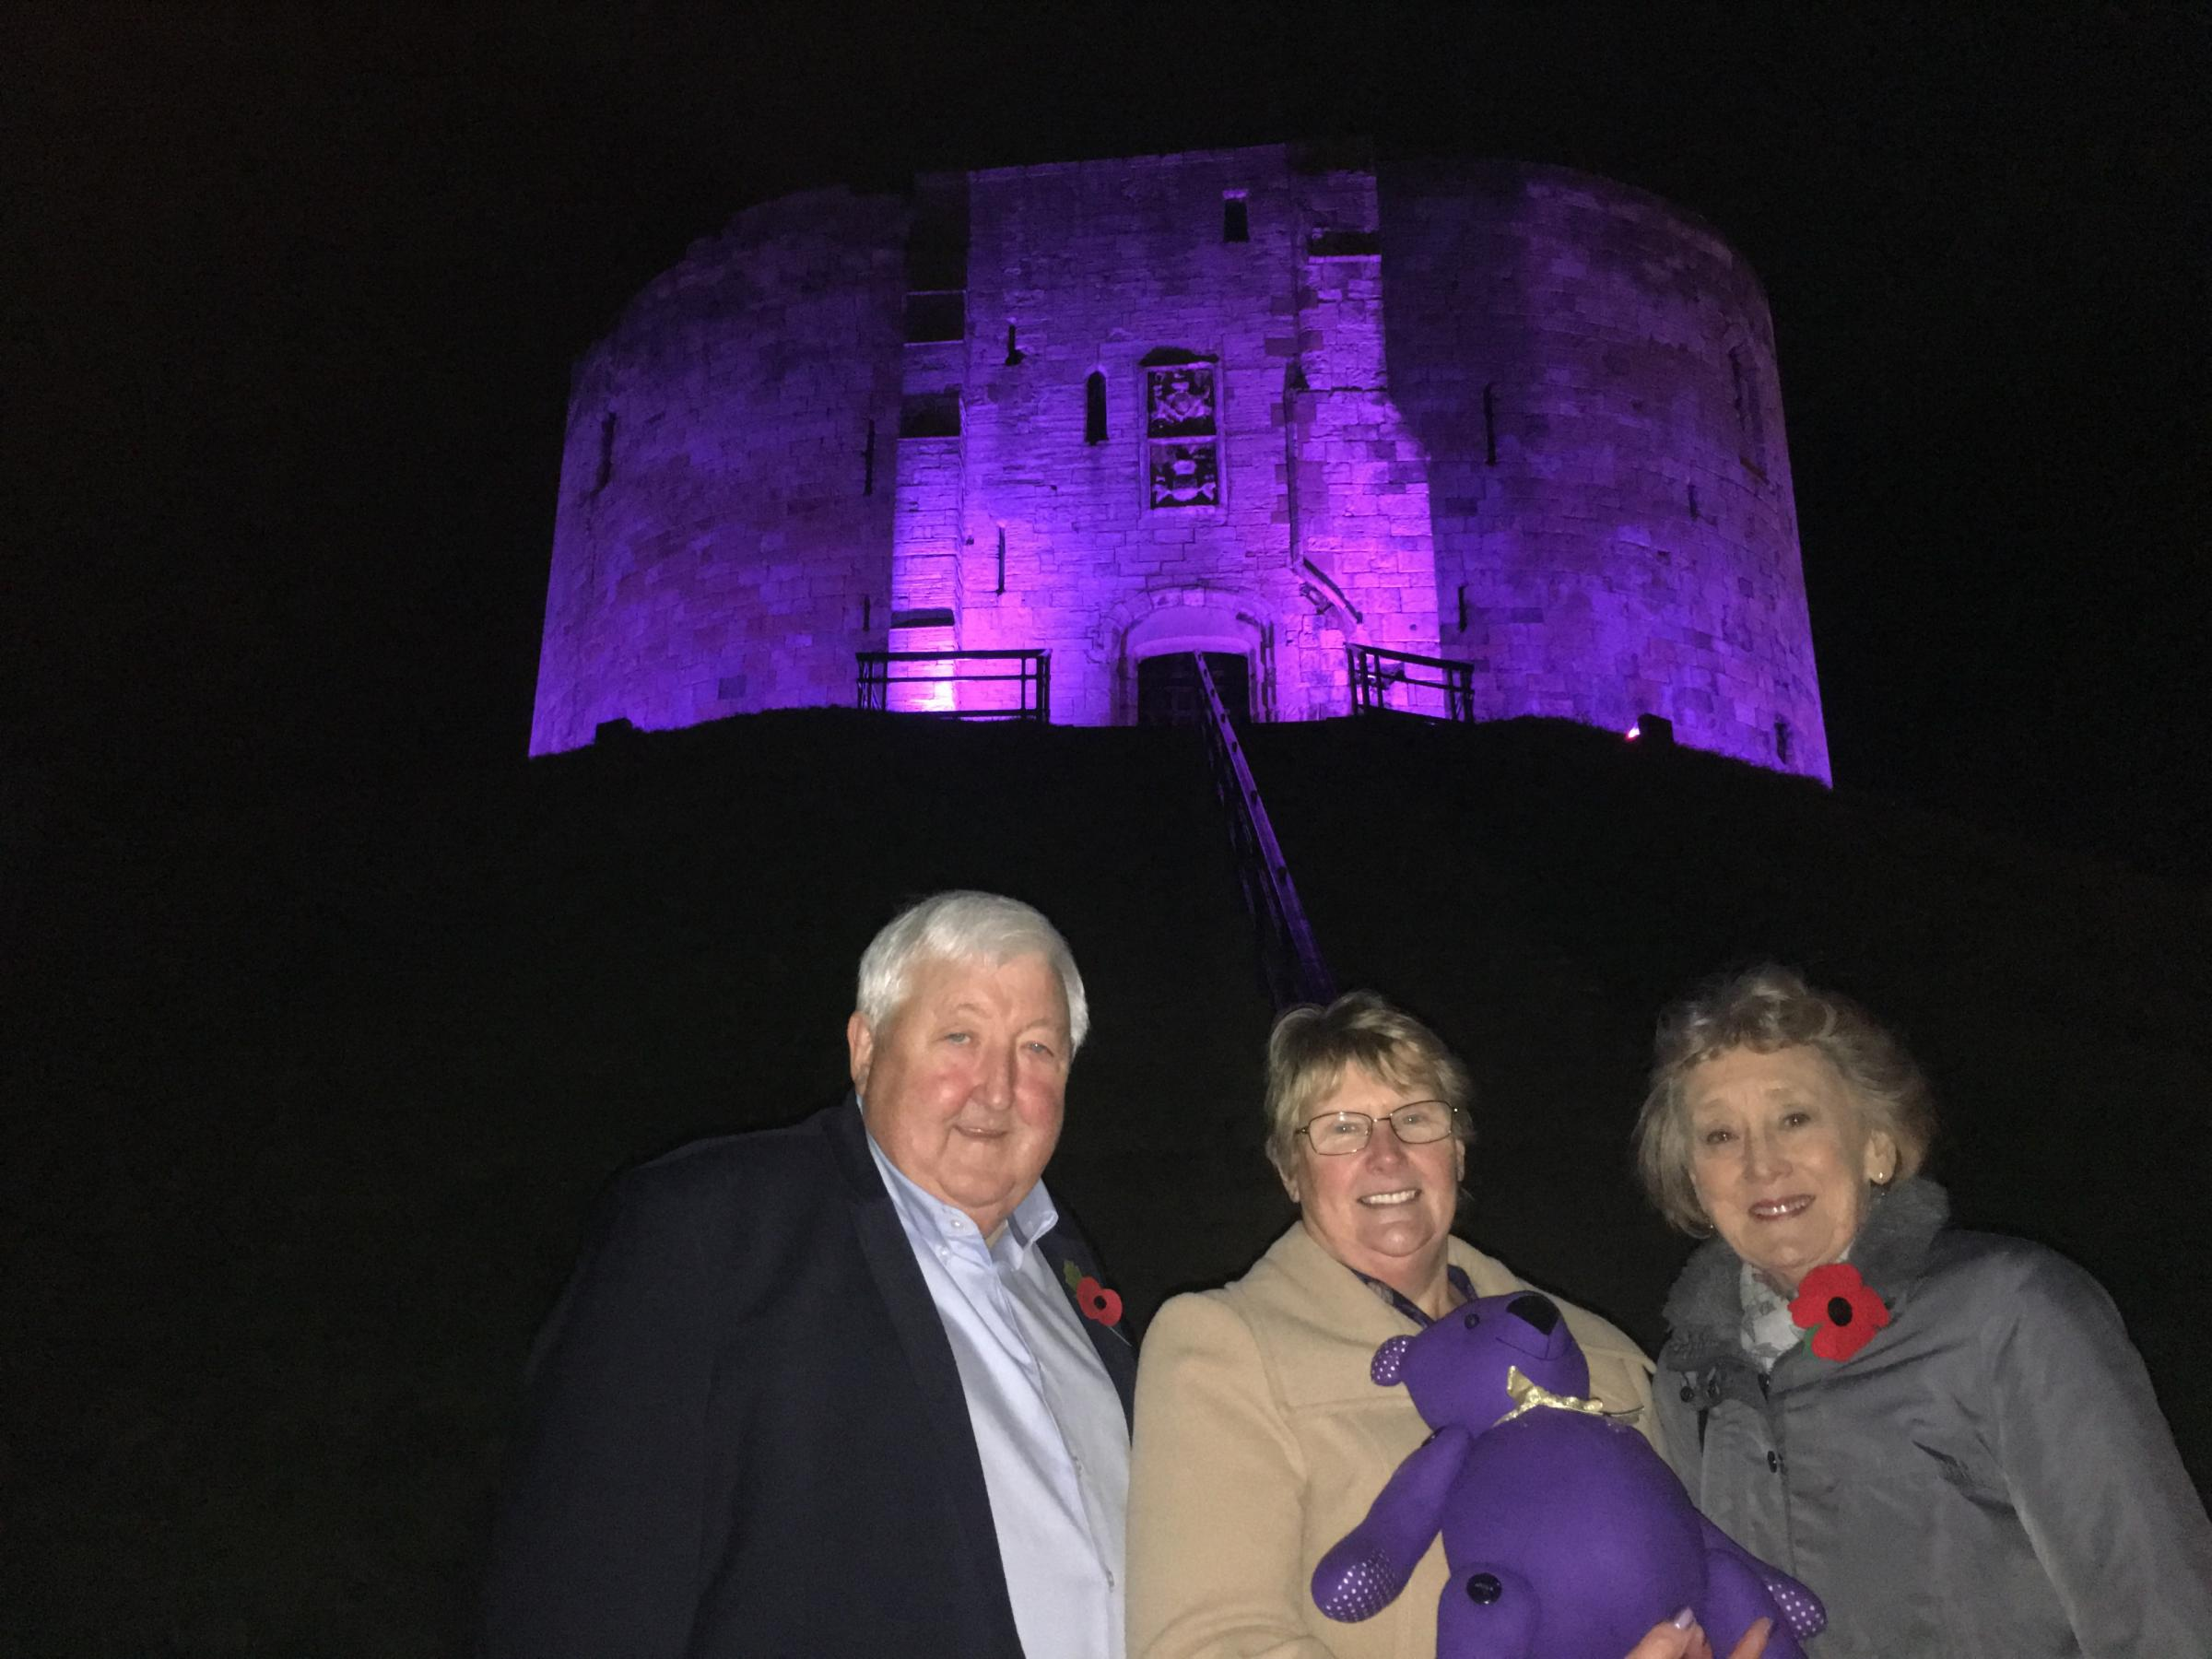 Cllr Ian Gillies, Jean Clark and Cllr Carol Runciman at Clifford's Tower, which is bathed in purple light